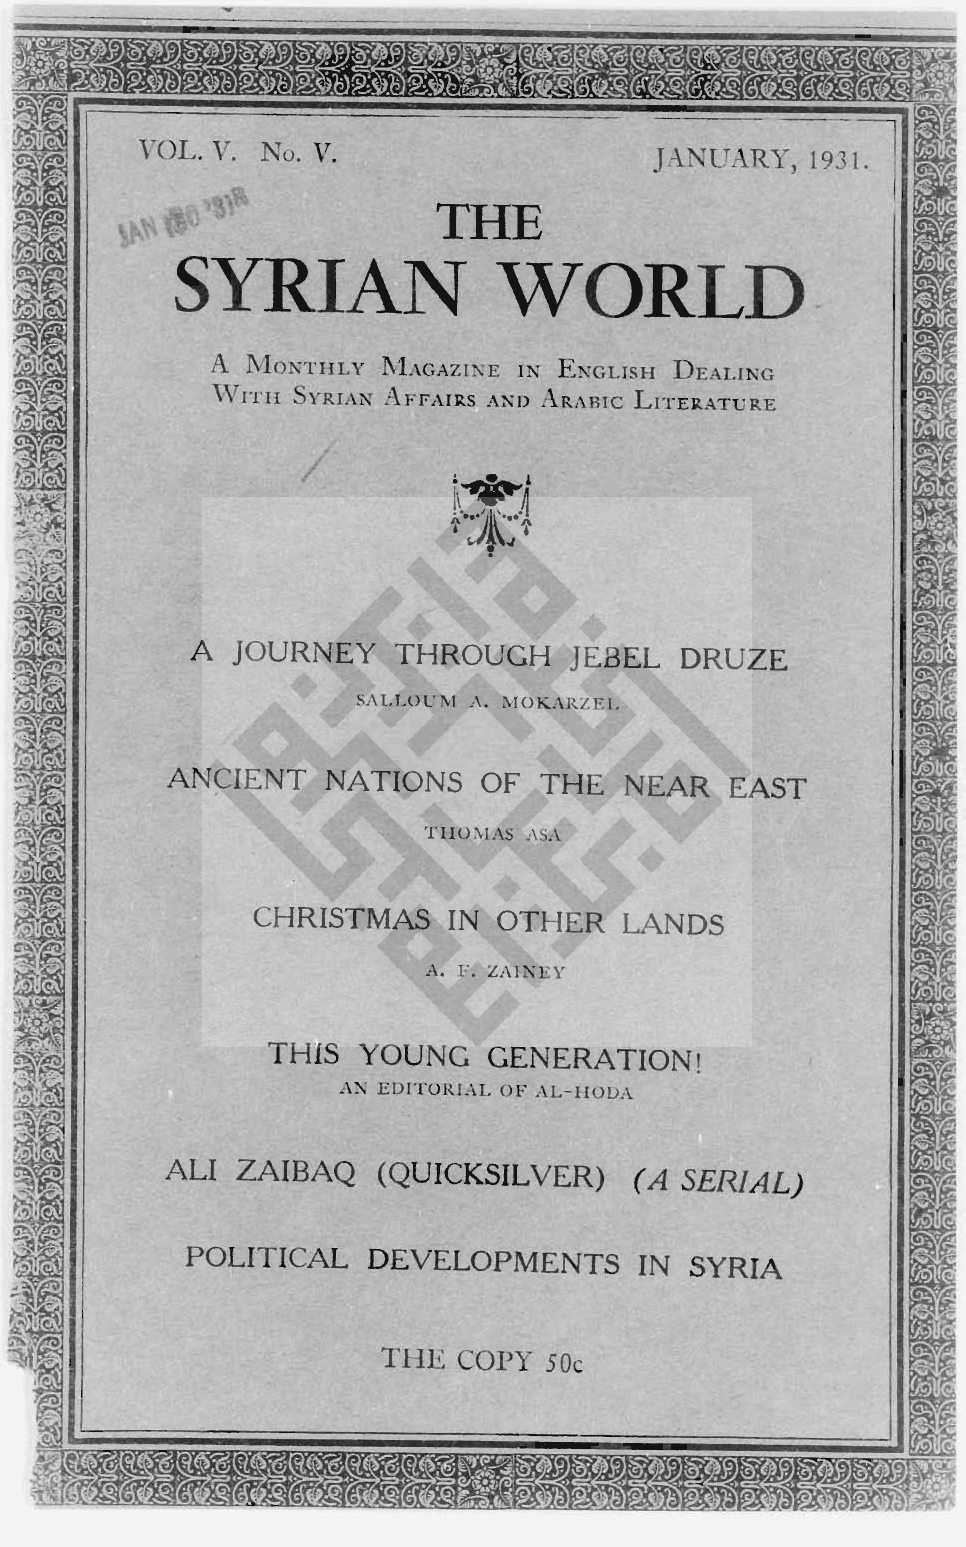 A Marvel and a Riddle, The Syrian World, 5, 5, January 1931